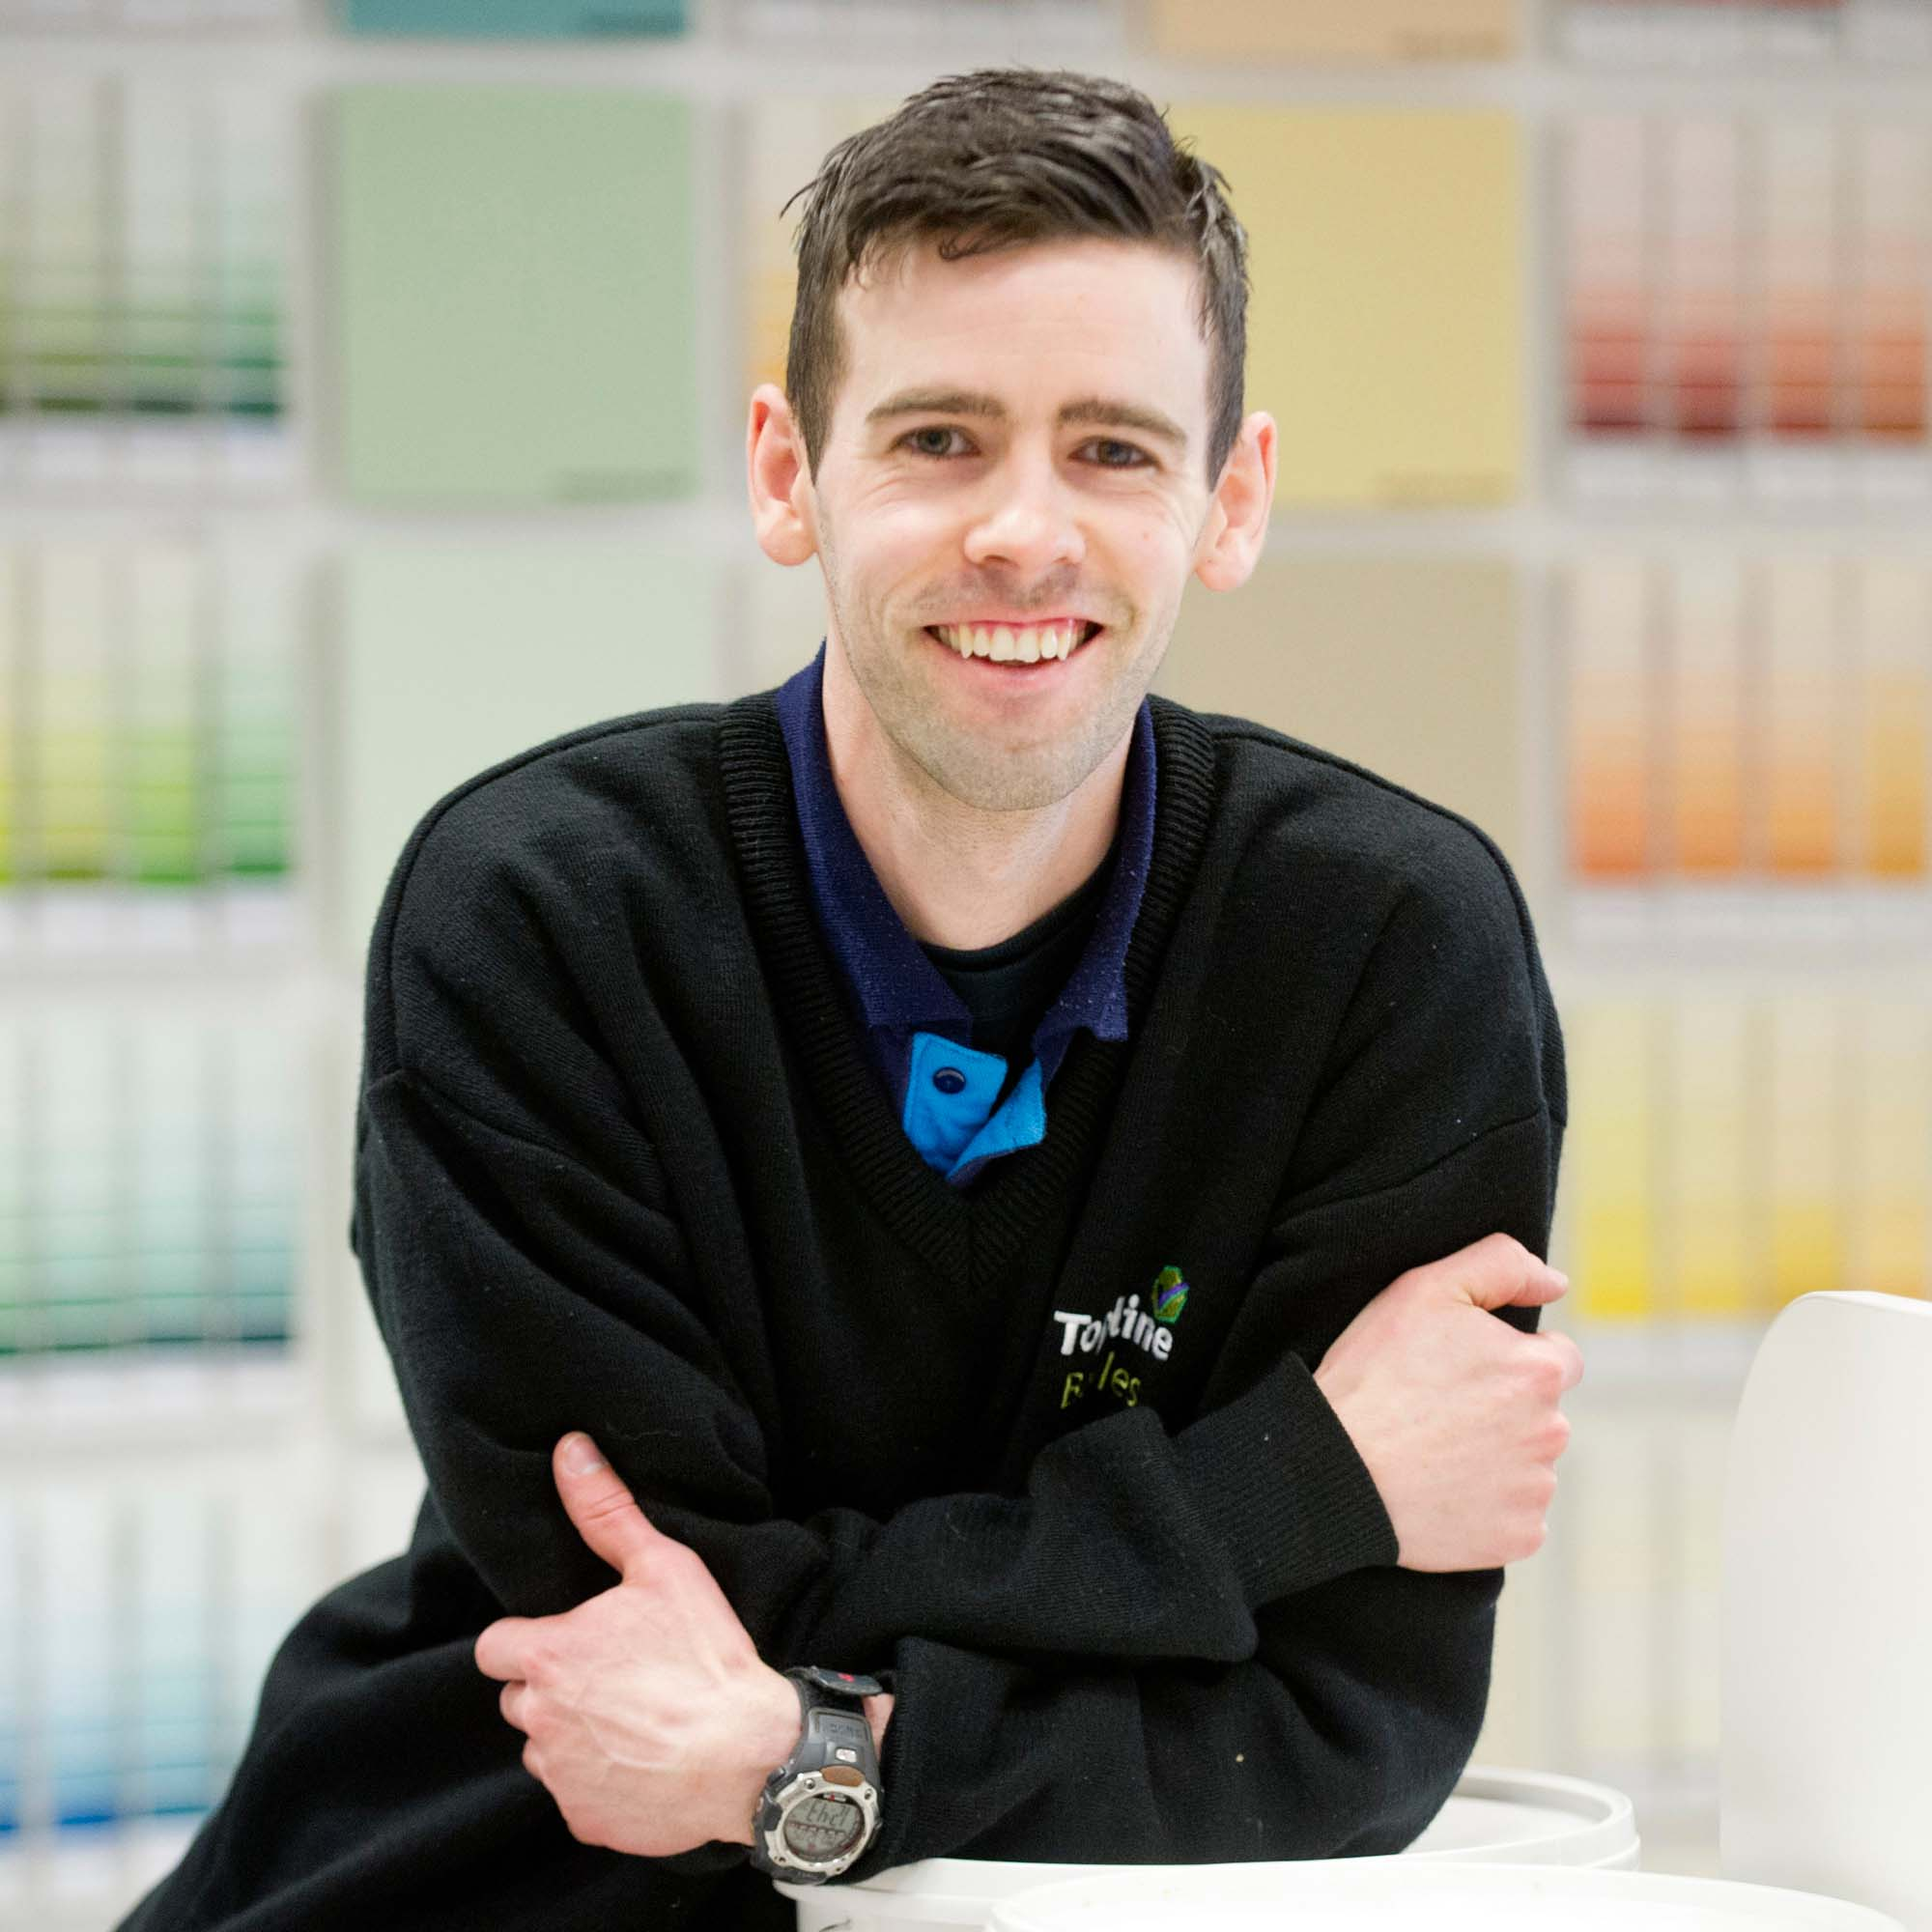 Paint Consultant - Patrick O' Connor